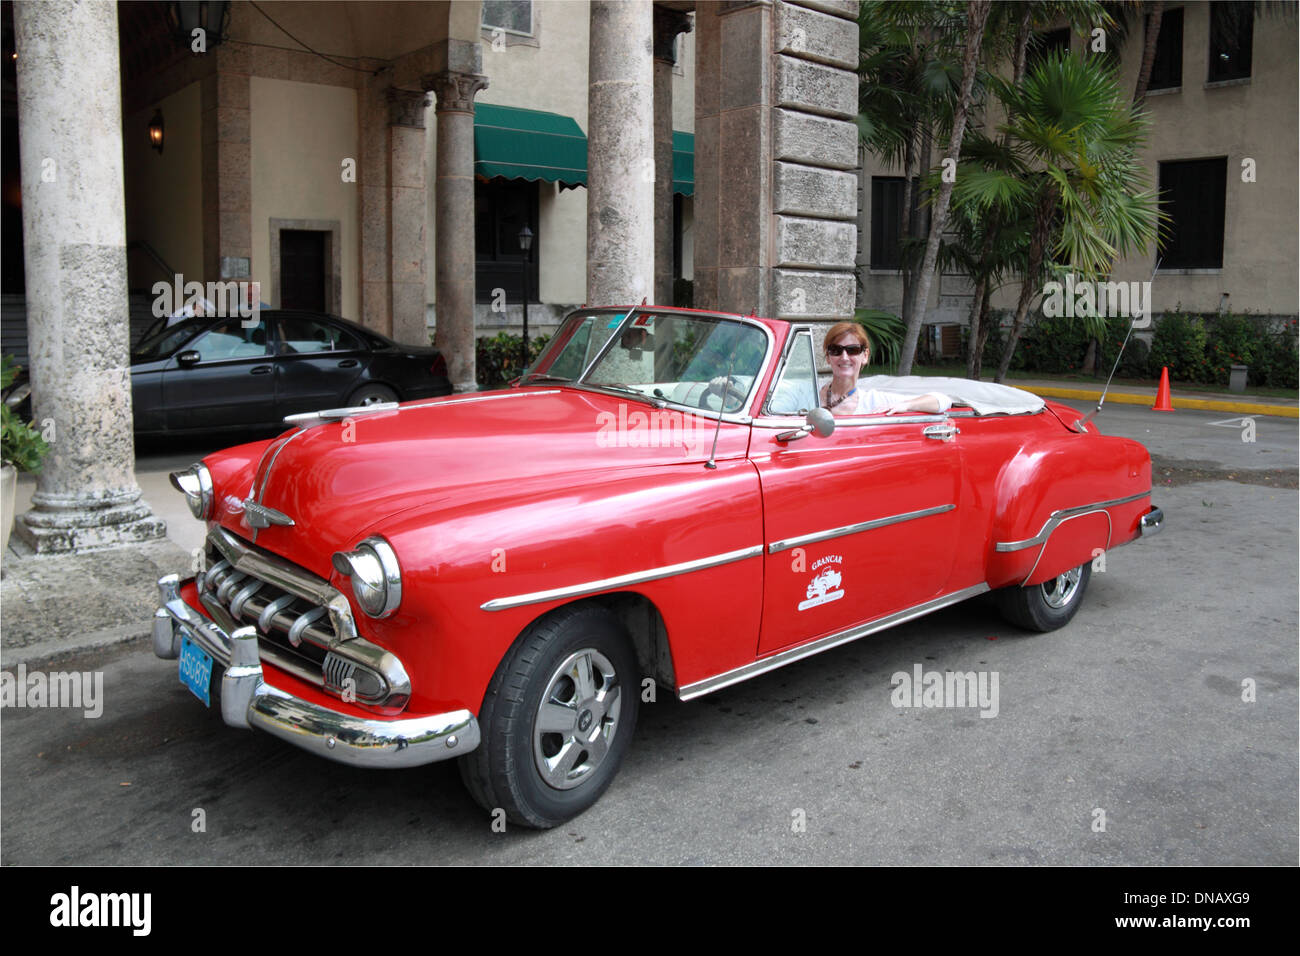 All Chevy 1952 chevy styleline parts : 1952 Chevrolet Styleline Deluxe Convertible, Hotel Nacional de ...